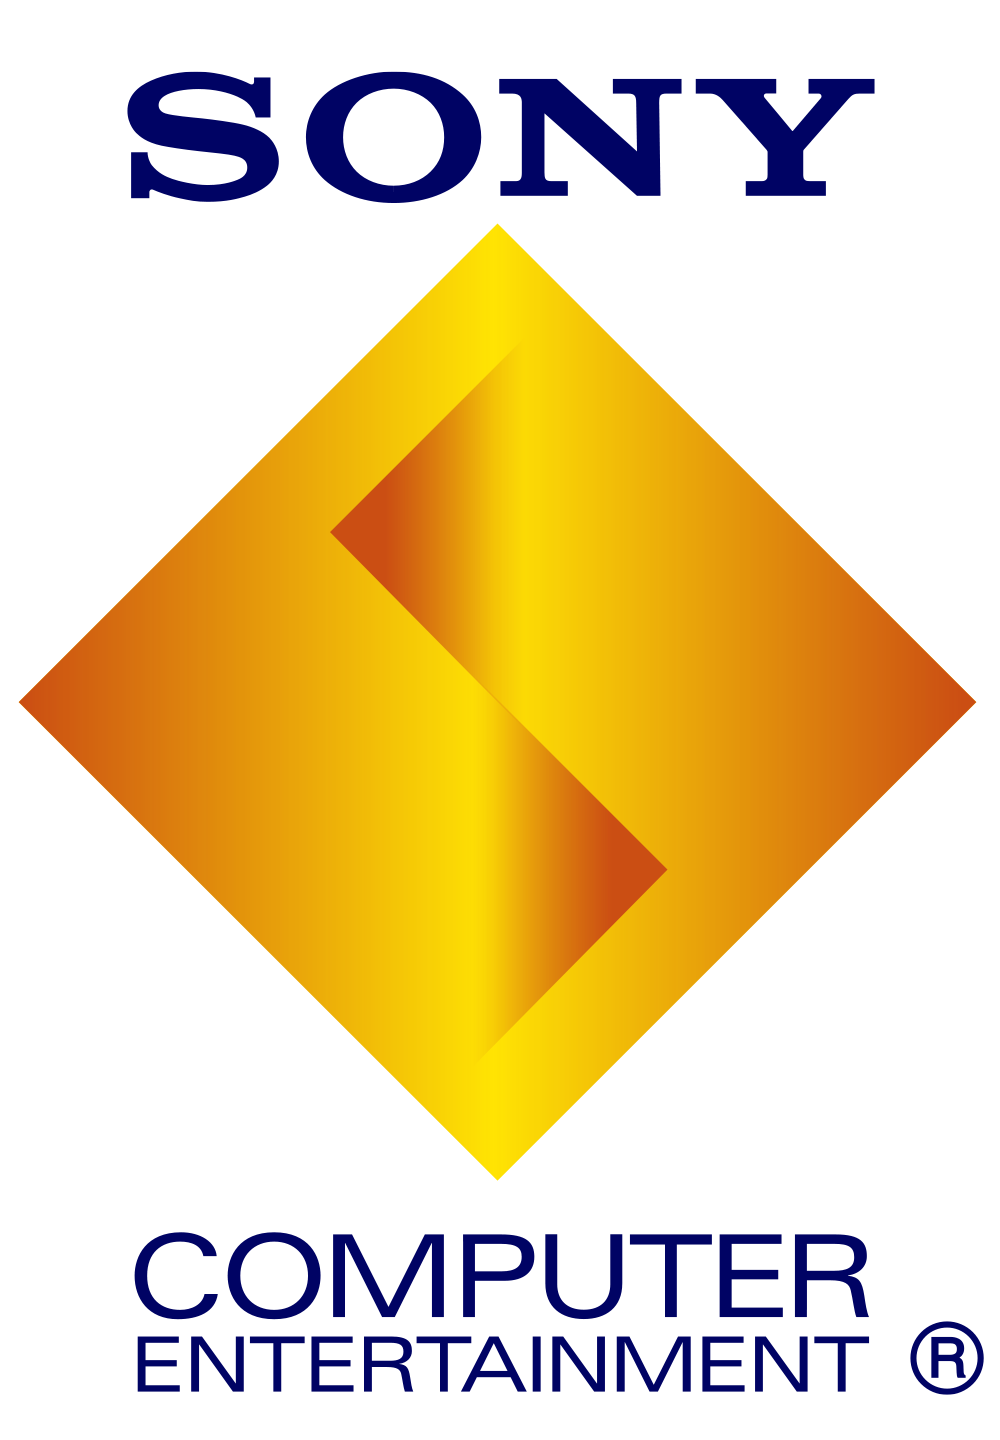 Sony_Computer_Entertainment_Logo.png